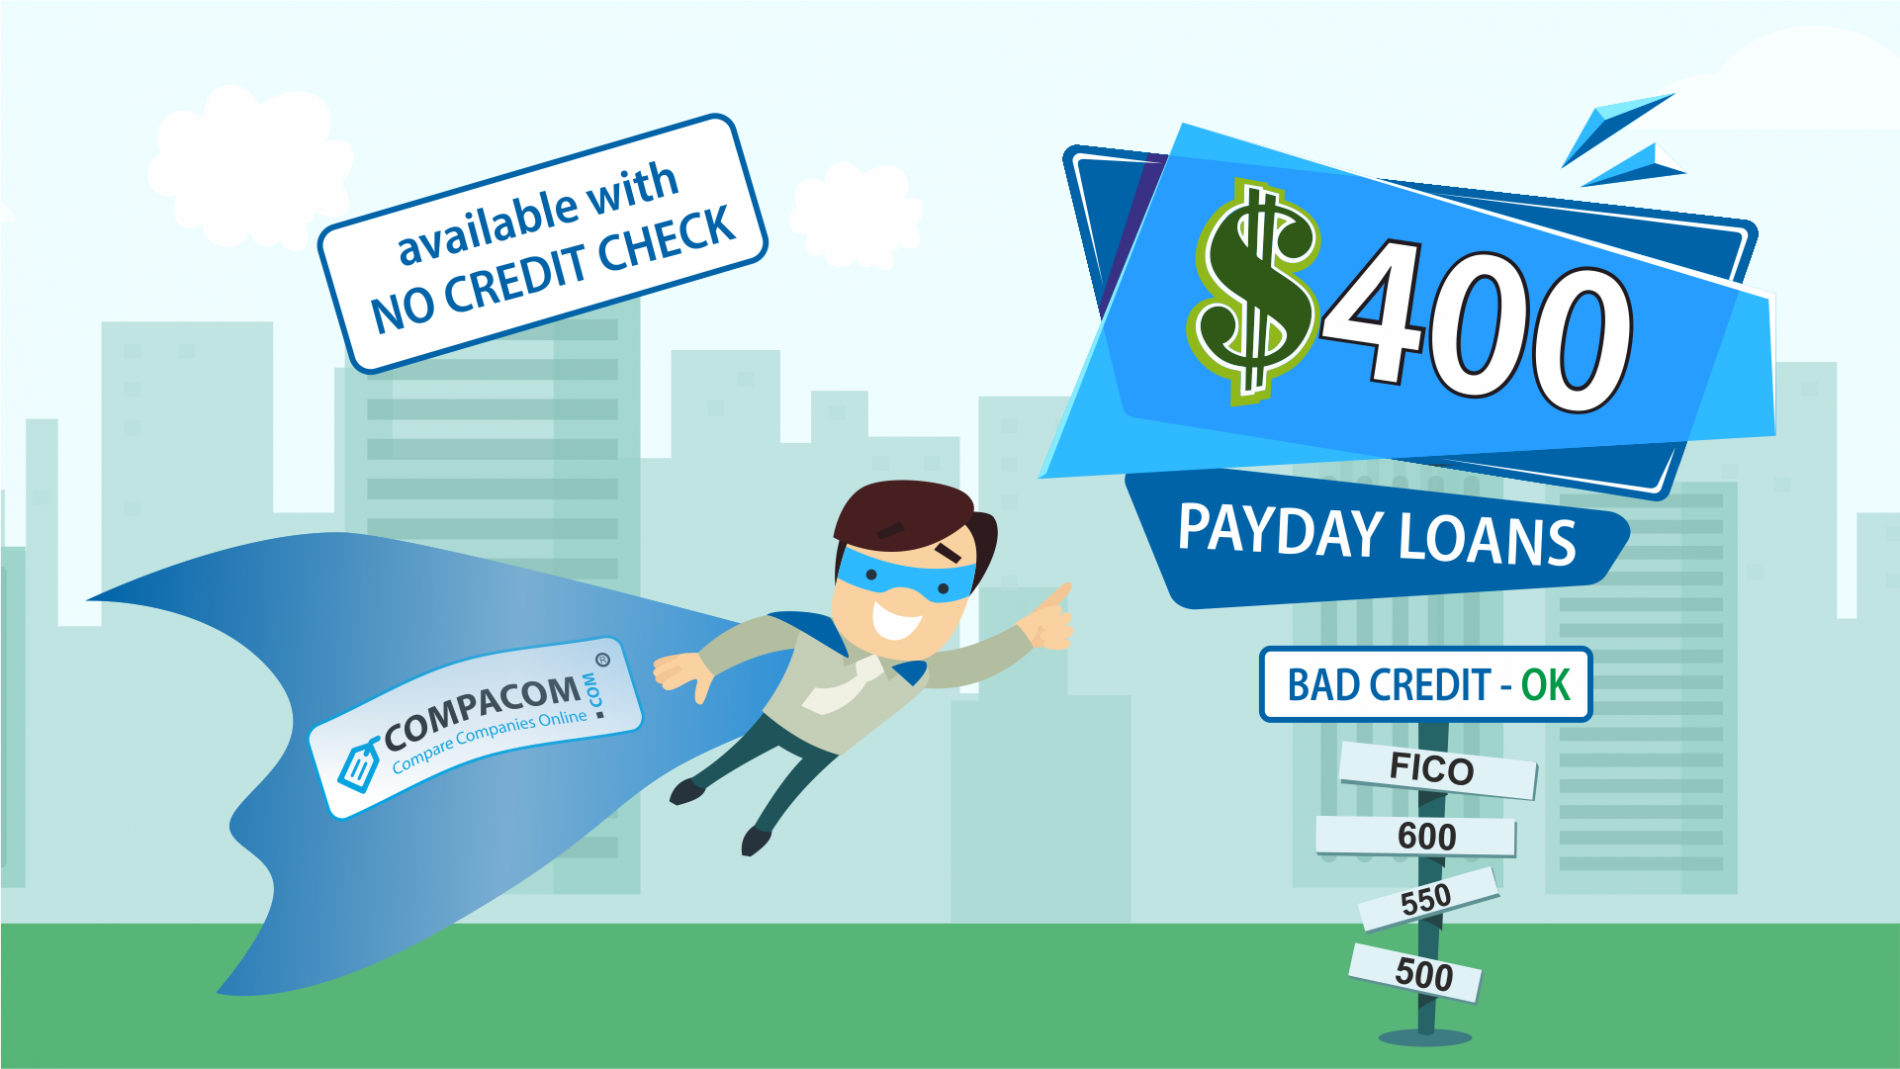 Get $400 - $1,000 Payday Loans with Fast and Easy Approval Online or the Same Day in a Store Near You